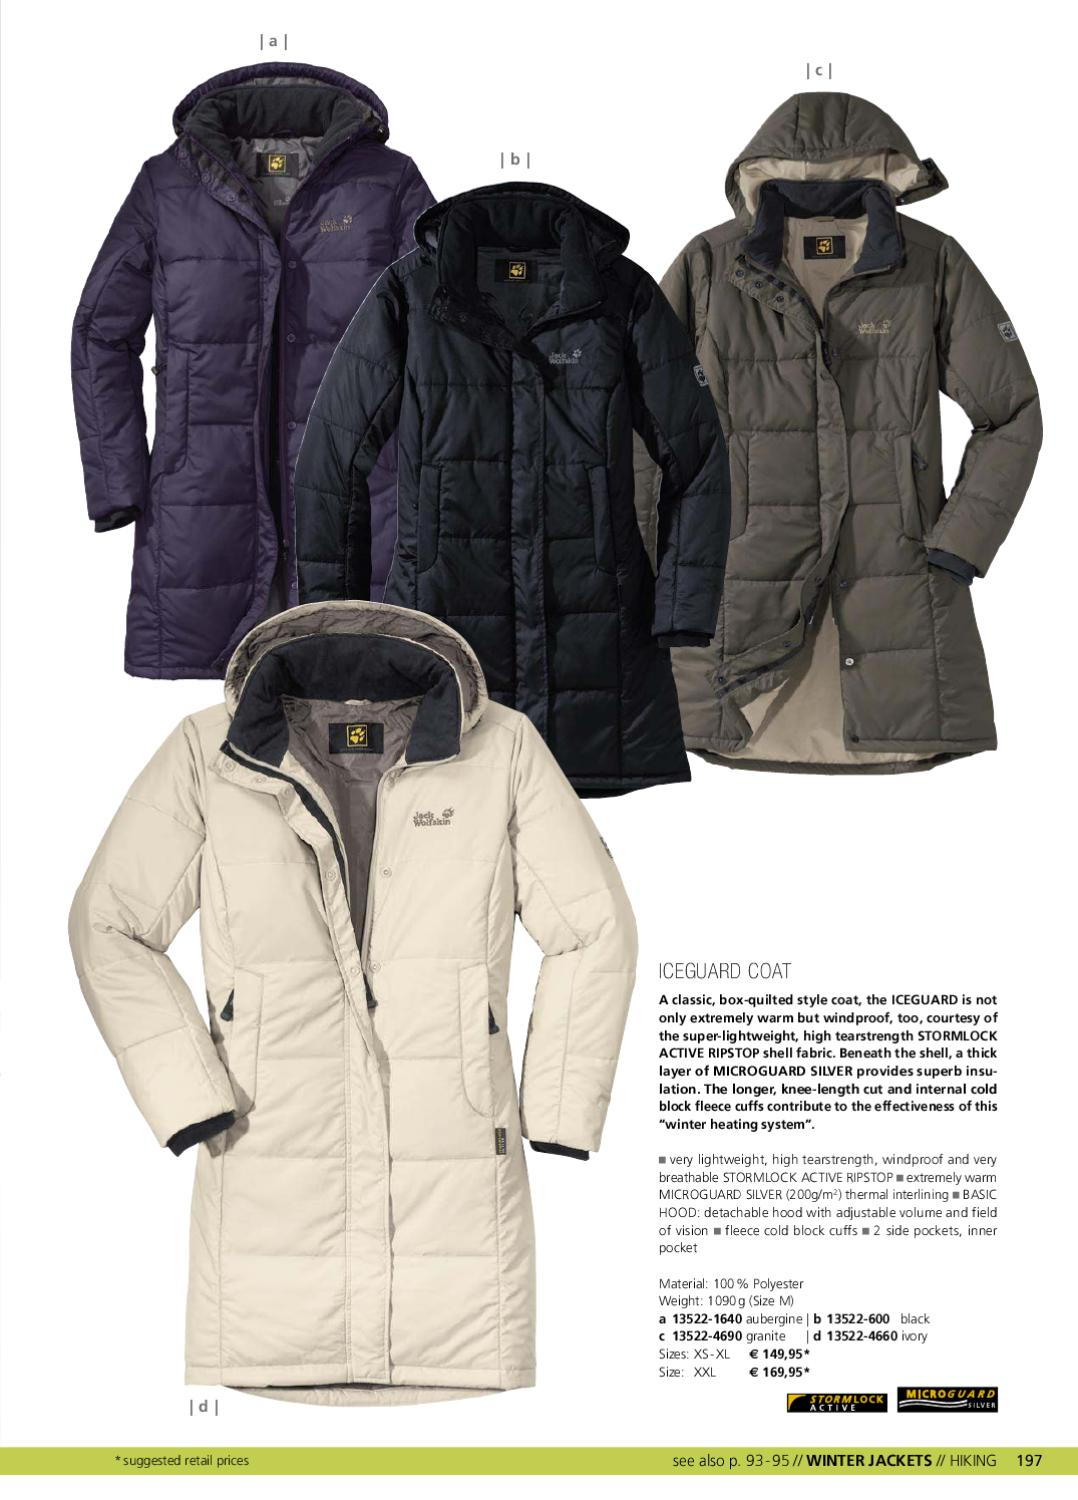 Jack Wolfskin Katalog Winter 2011 by Jack Wolfskin issuu